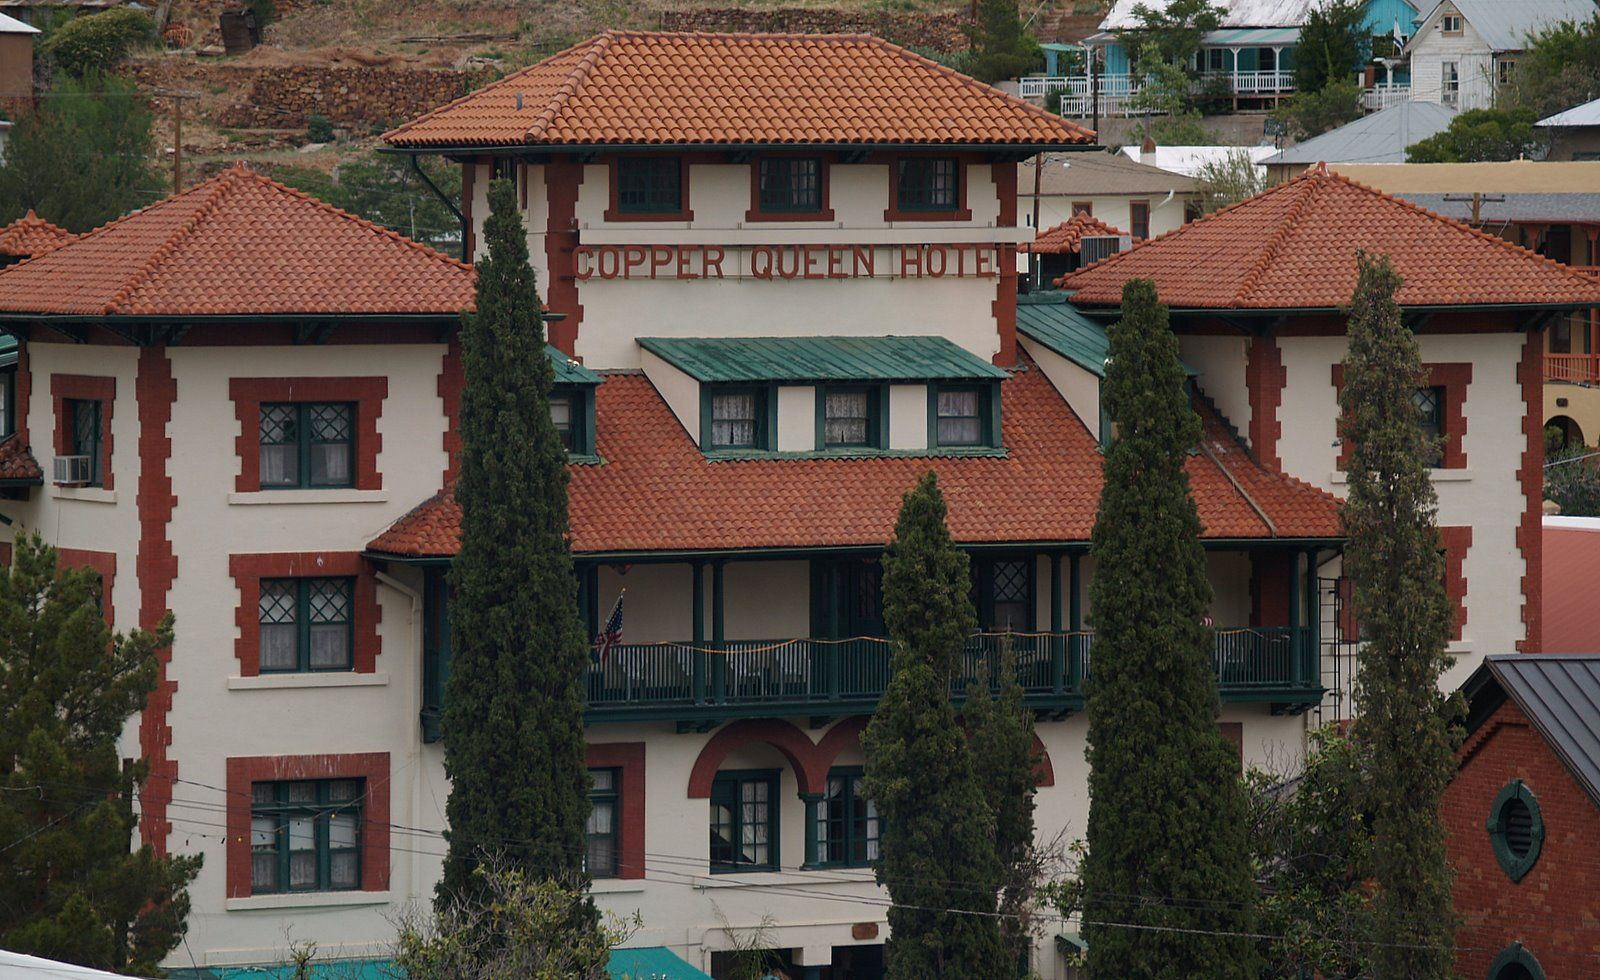 Copper Queen Hotel Bisbee Arizona There Are Reportedly Three Resident Ghosts In The